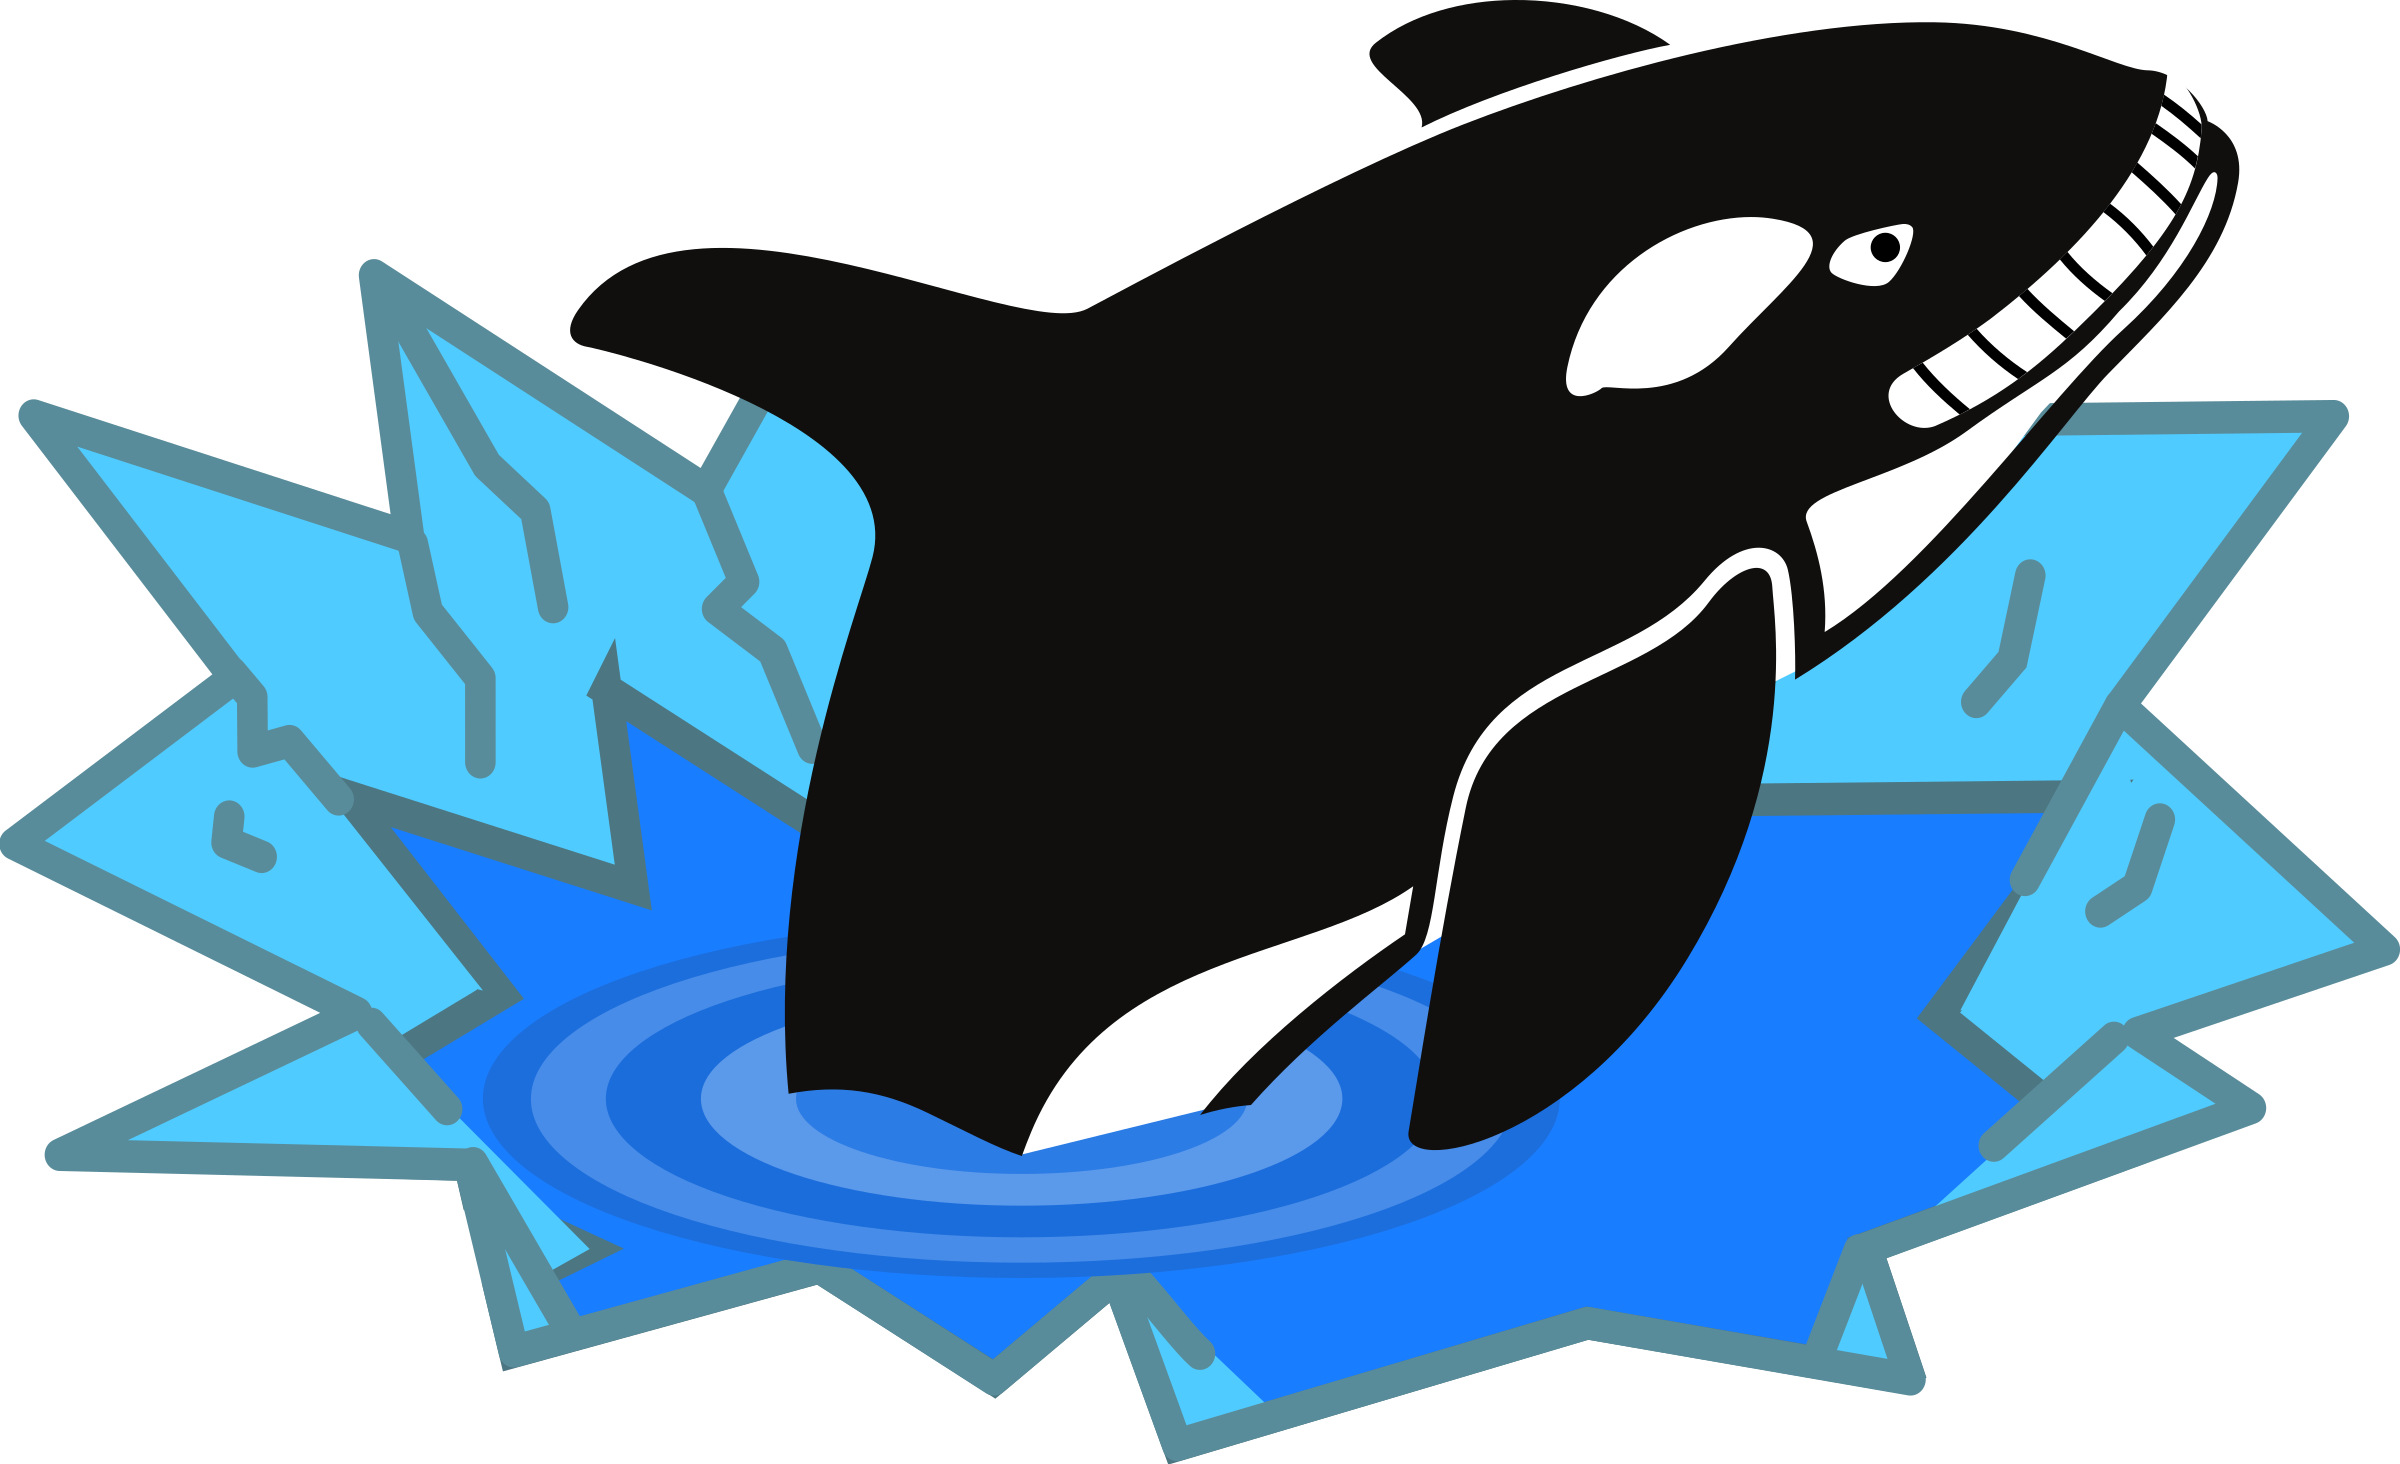 Evil Orca Cartoon Looking and Smiling with teeth by qubodup